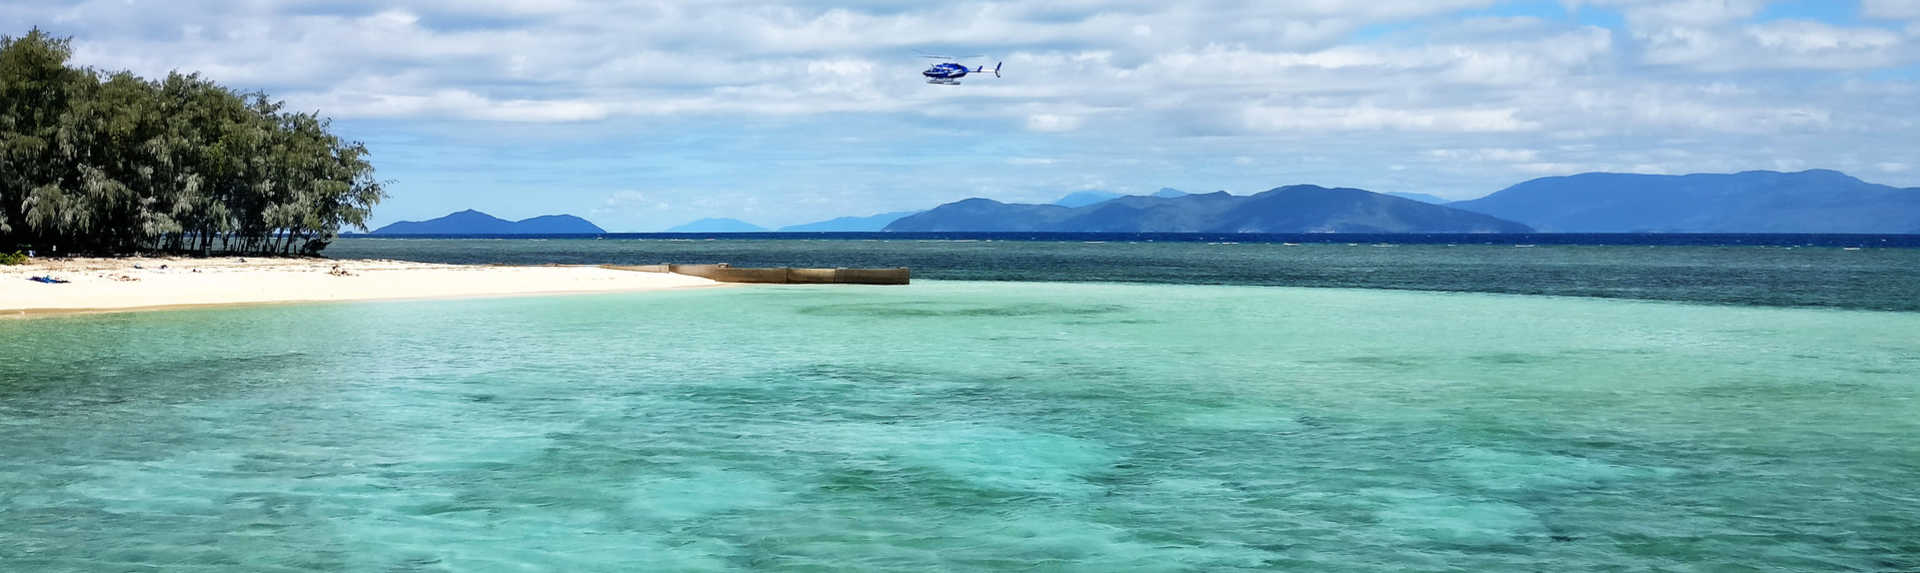 How far out is the Great Barrier Reef?